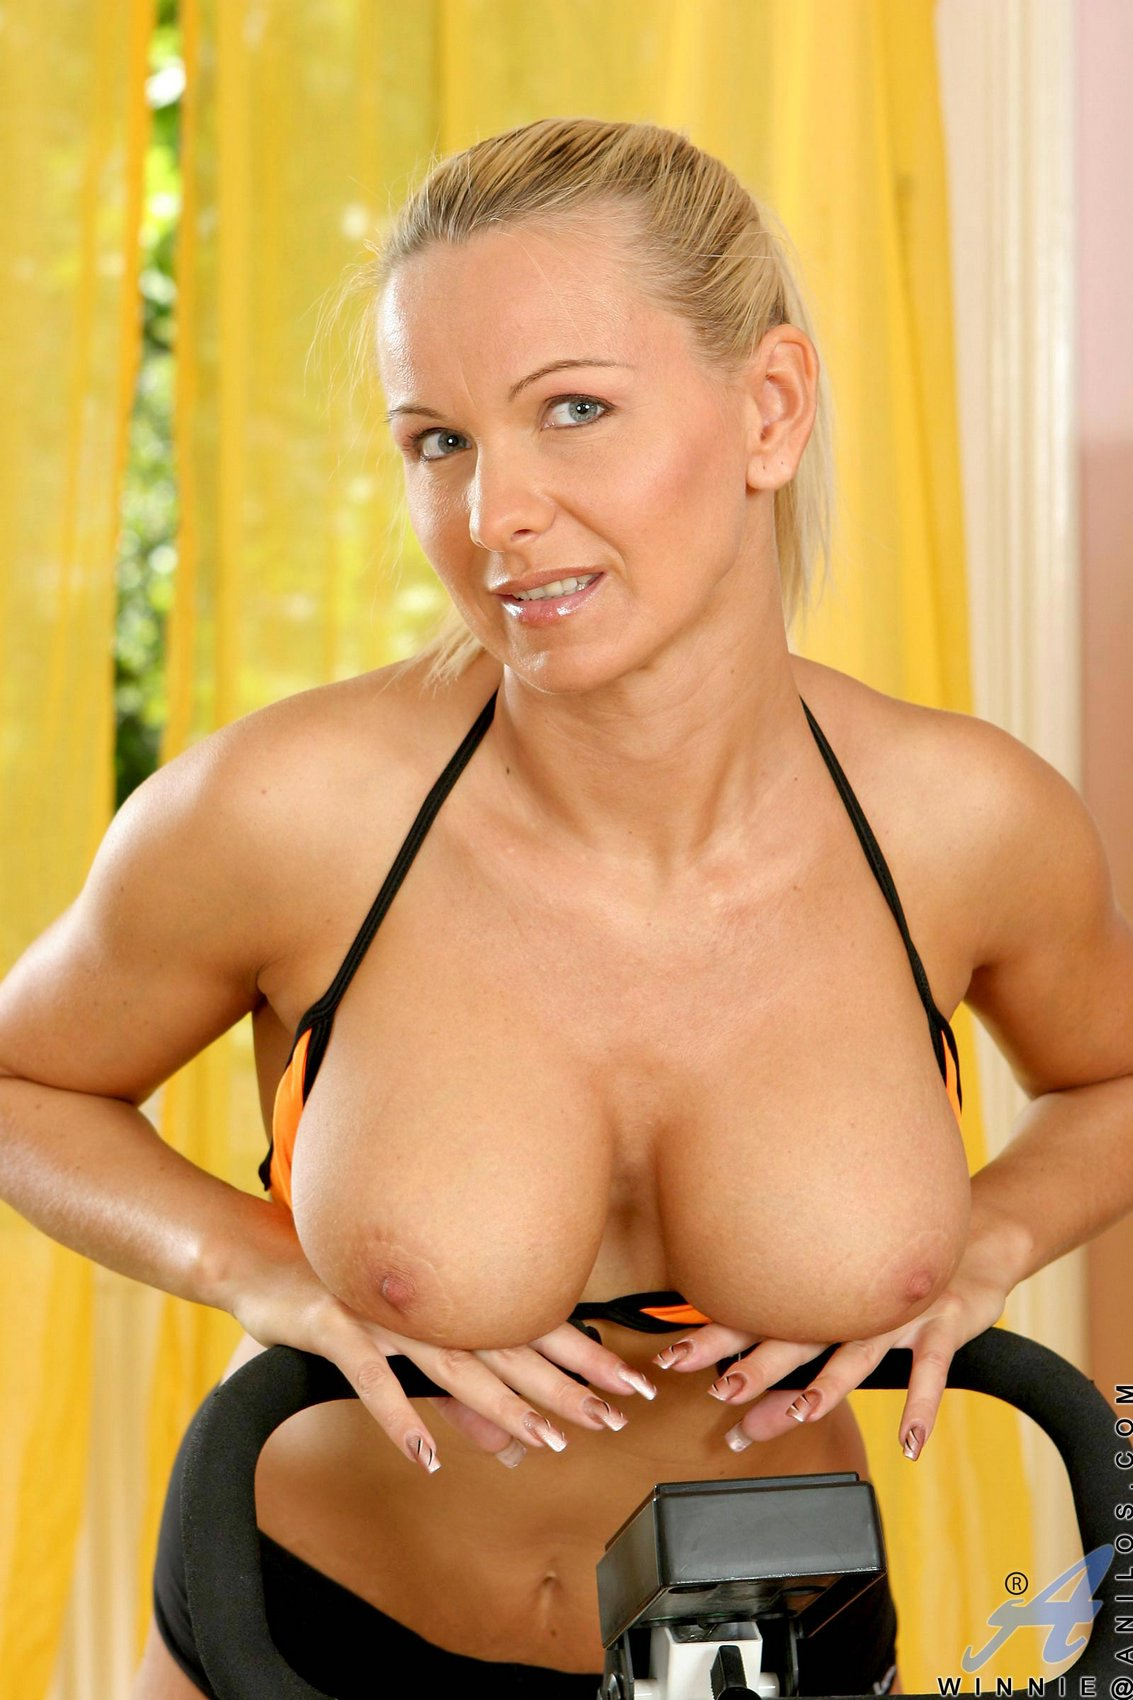 Blonde mature have a beautiful pictures sesion by fdcrn 10